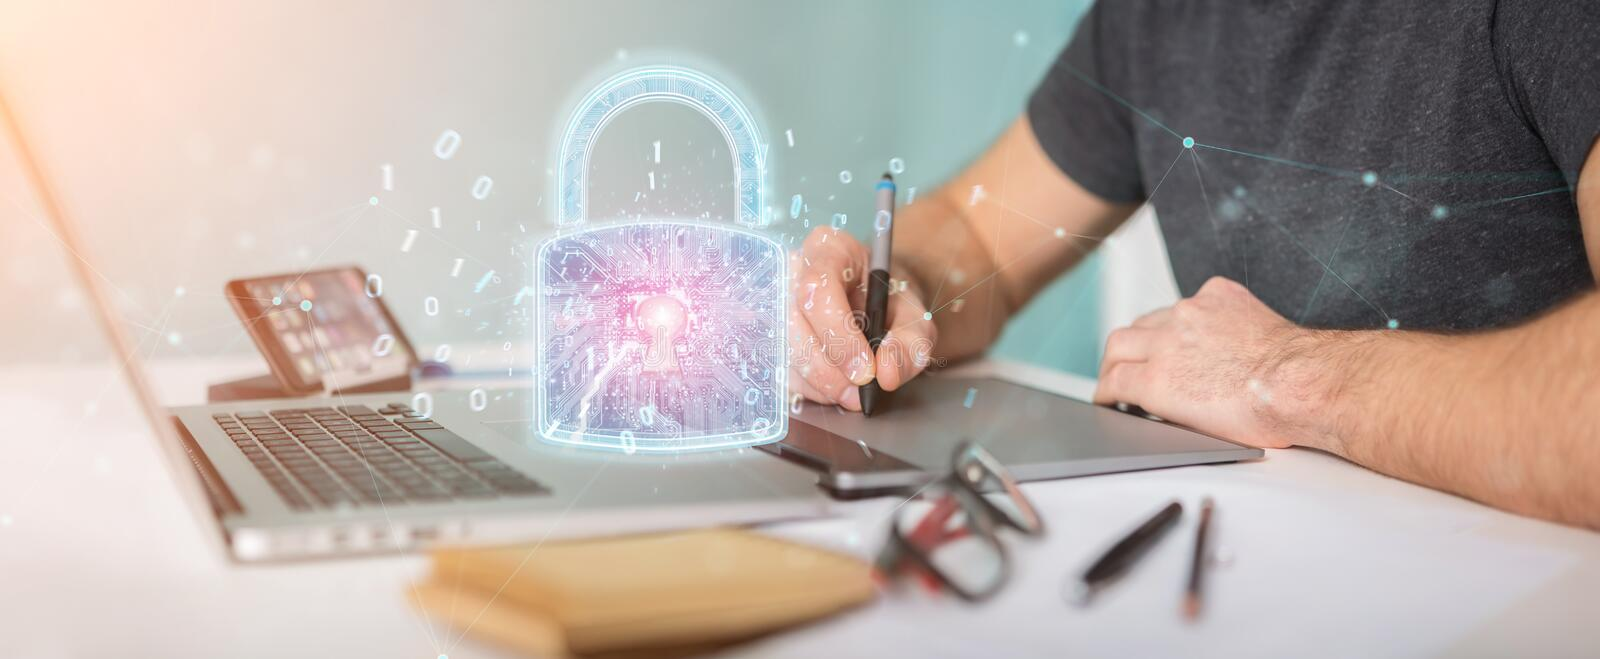 Web security protection interface used by graphic designer 3D rendering stock illustration